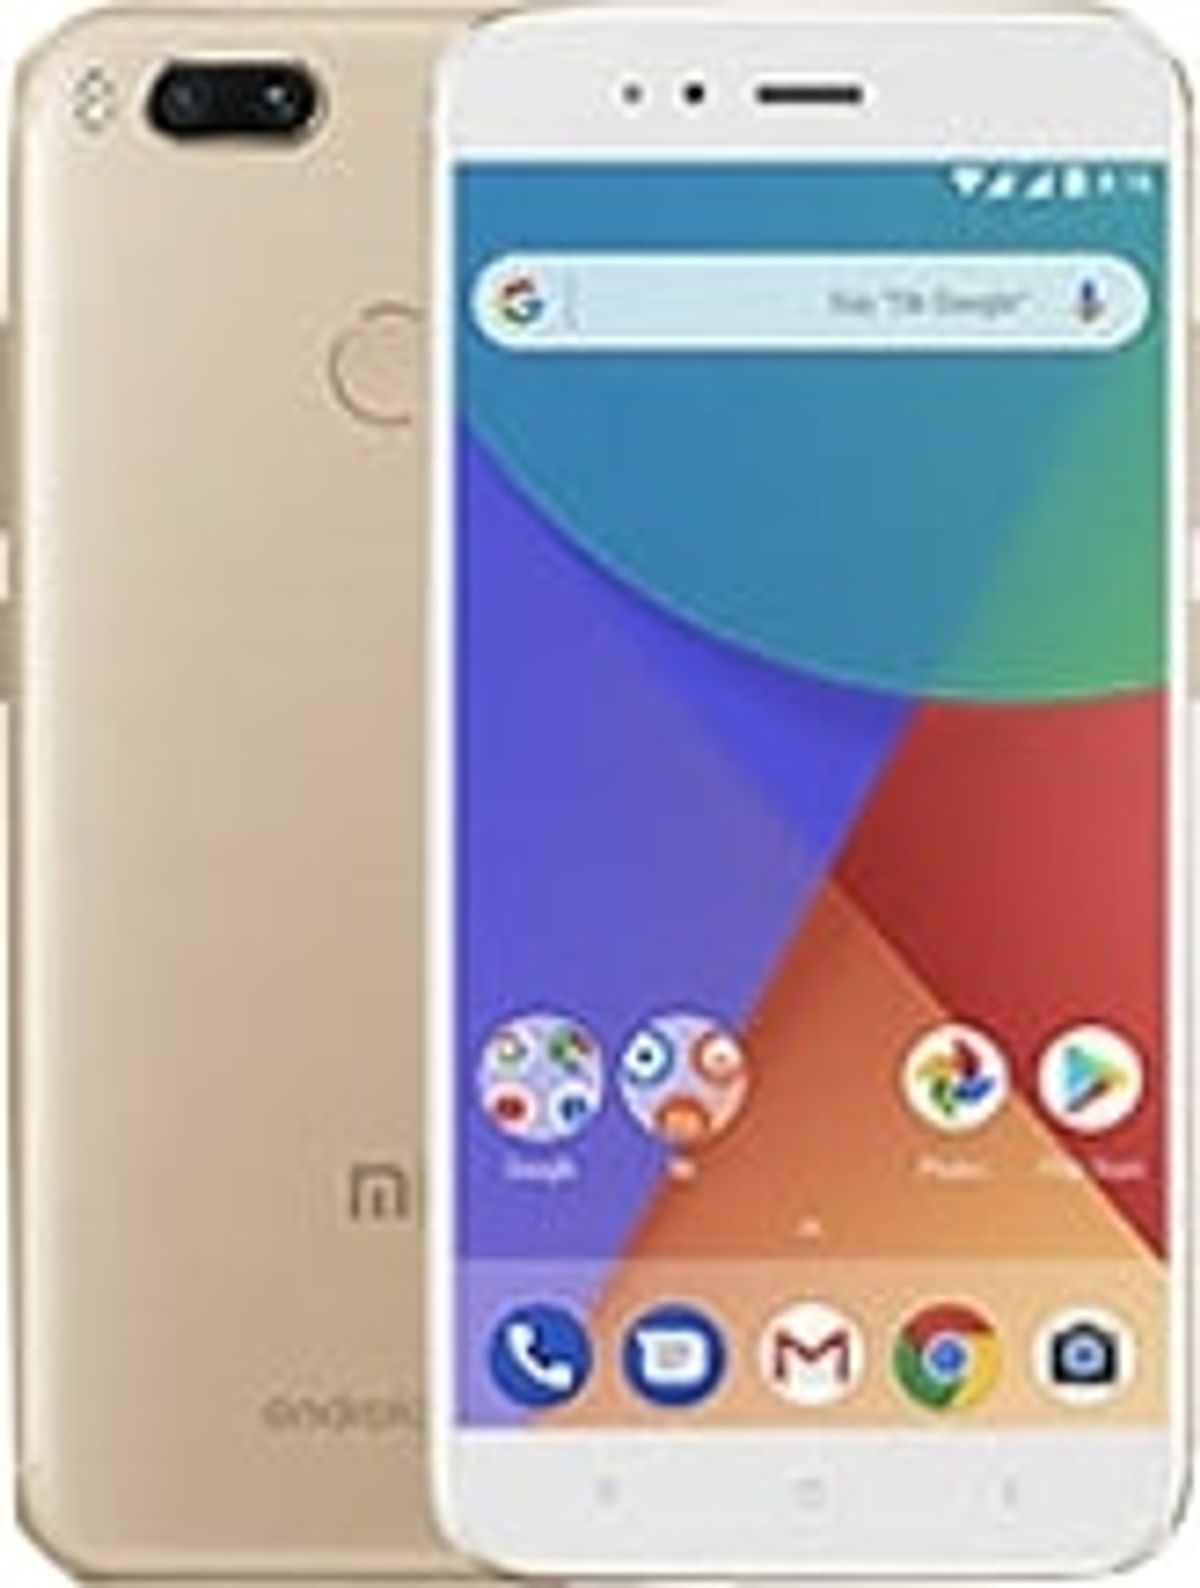 Best Xiaomi Phones Under 15000 - September 2019 in India